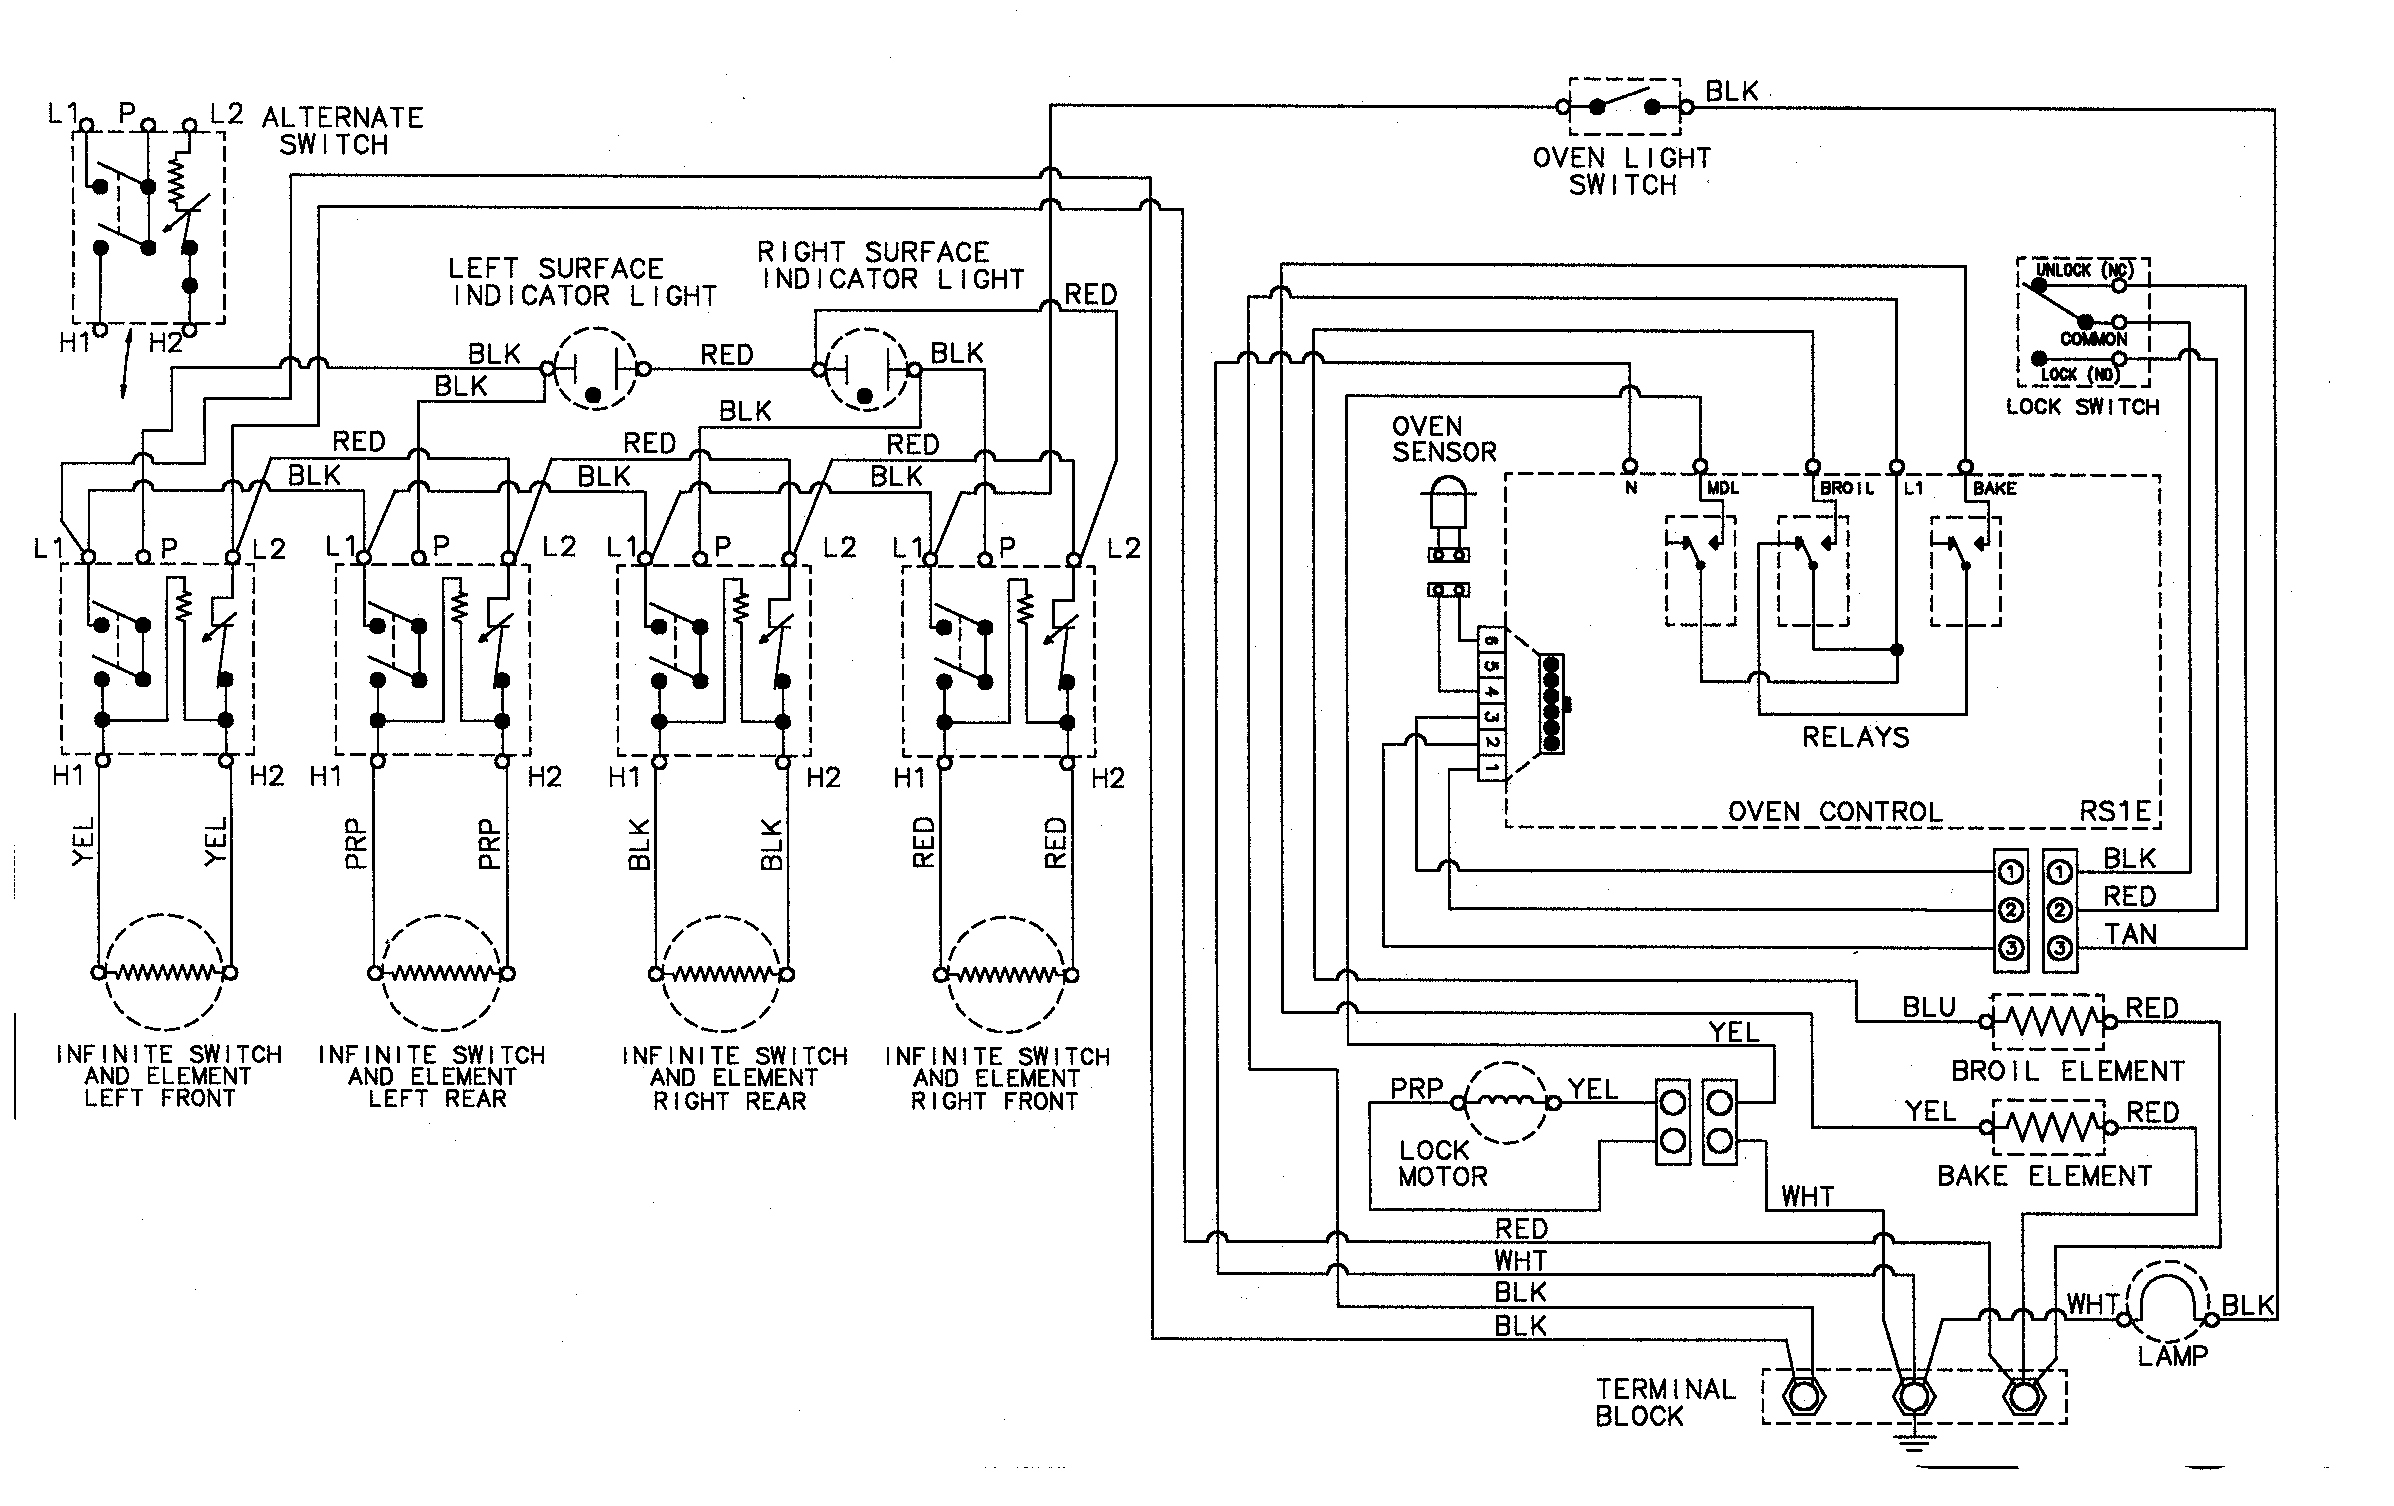 Unique Wiring Diagram Of Electric Cooker Diagram Diagramsample Diagramtemplate Wiringdiagram Diagramcha Electric Stove Electric Cooker Electric Range Oven